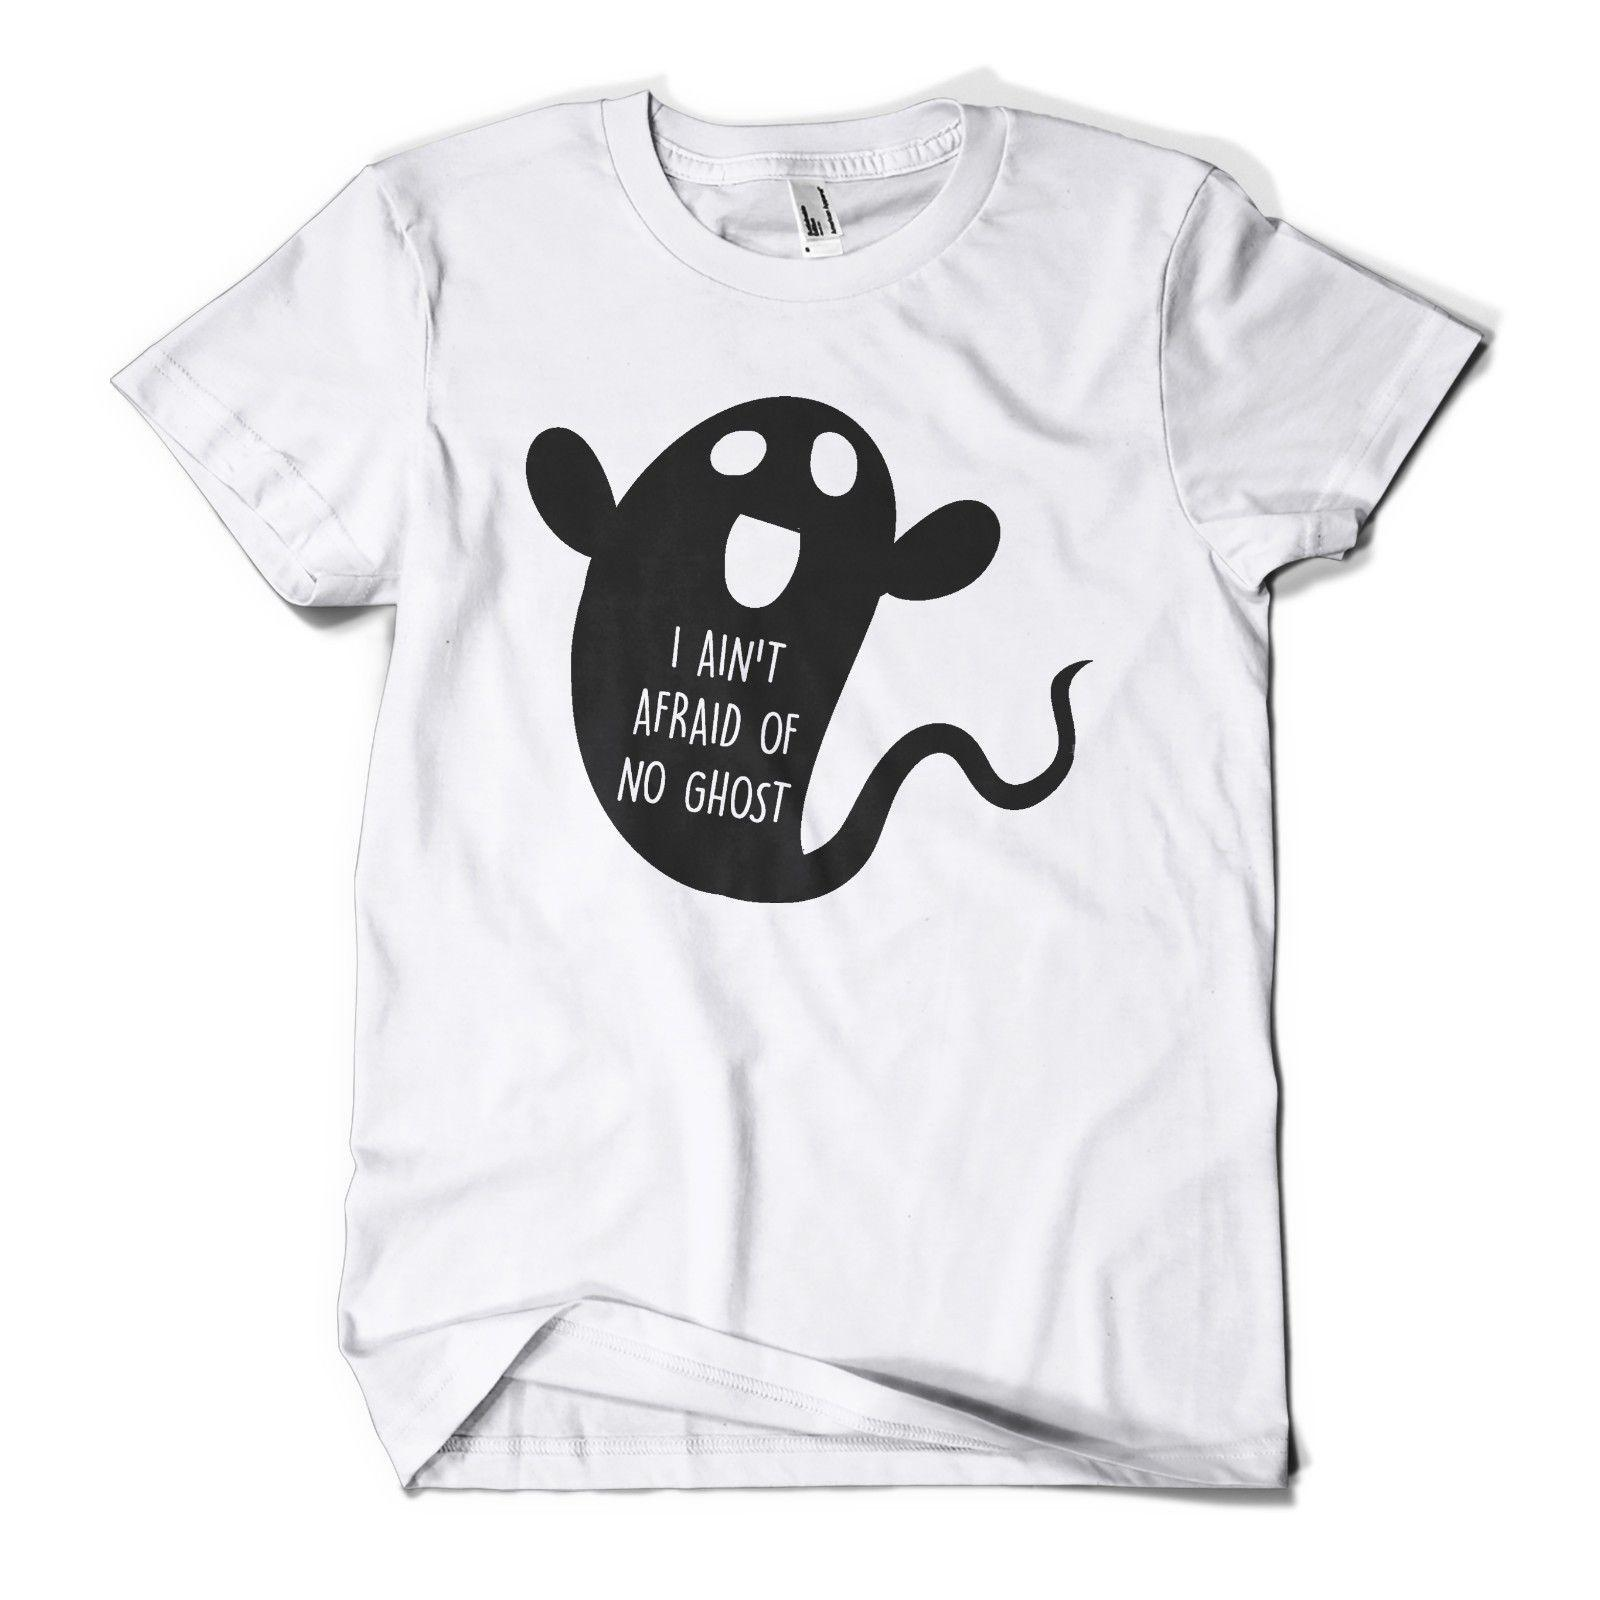 a744dc09ed5 I Aint Afraid Of No Ghost T Shirt Funny Halloween Costume Mens Girls Tee  Top New New T Shirts Funny Tops Fun T Shirt Buy Online T Shirts From  Xuthusstore